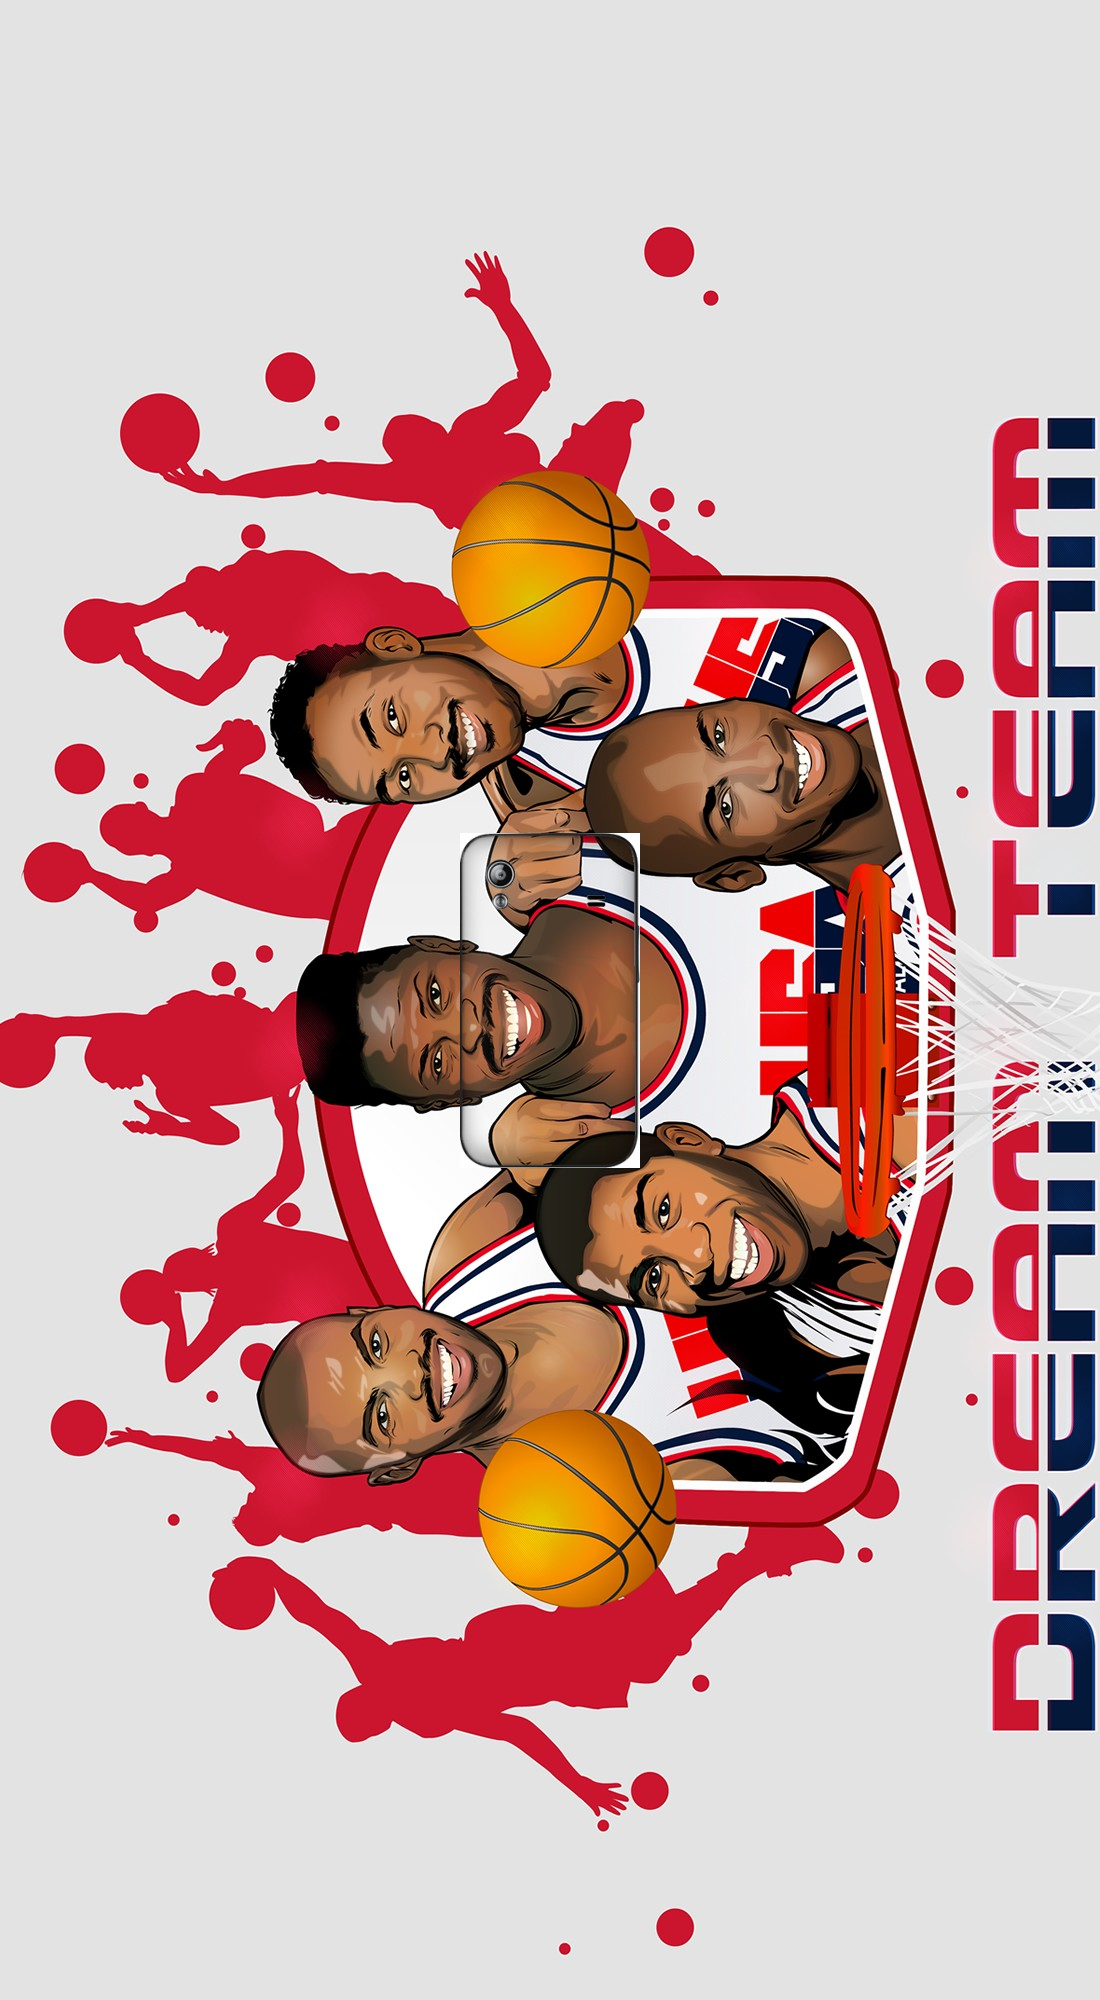 housse NBA Legends: Dream Team 1992 a clapet pour Samsung Galaxy Ace S5830